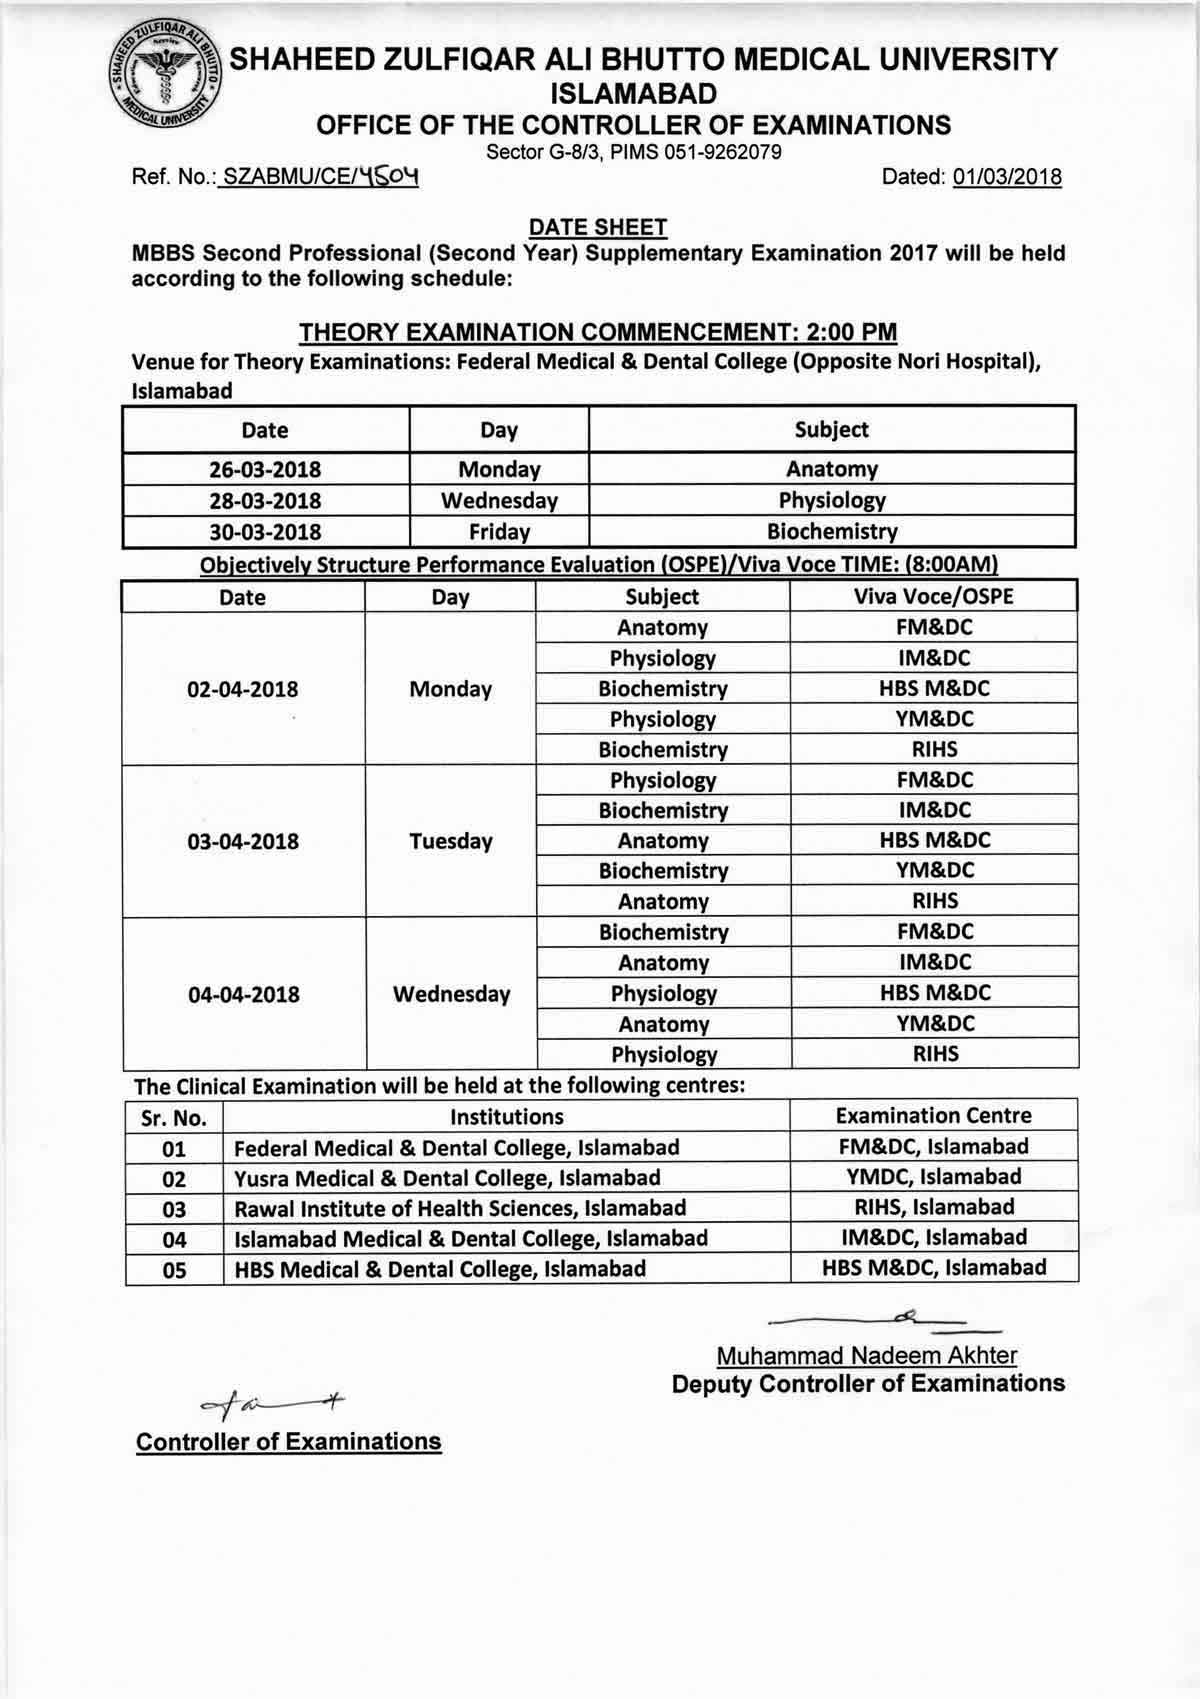 Date sheet - MBBS All Professional Supplementary Examinations 2017